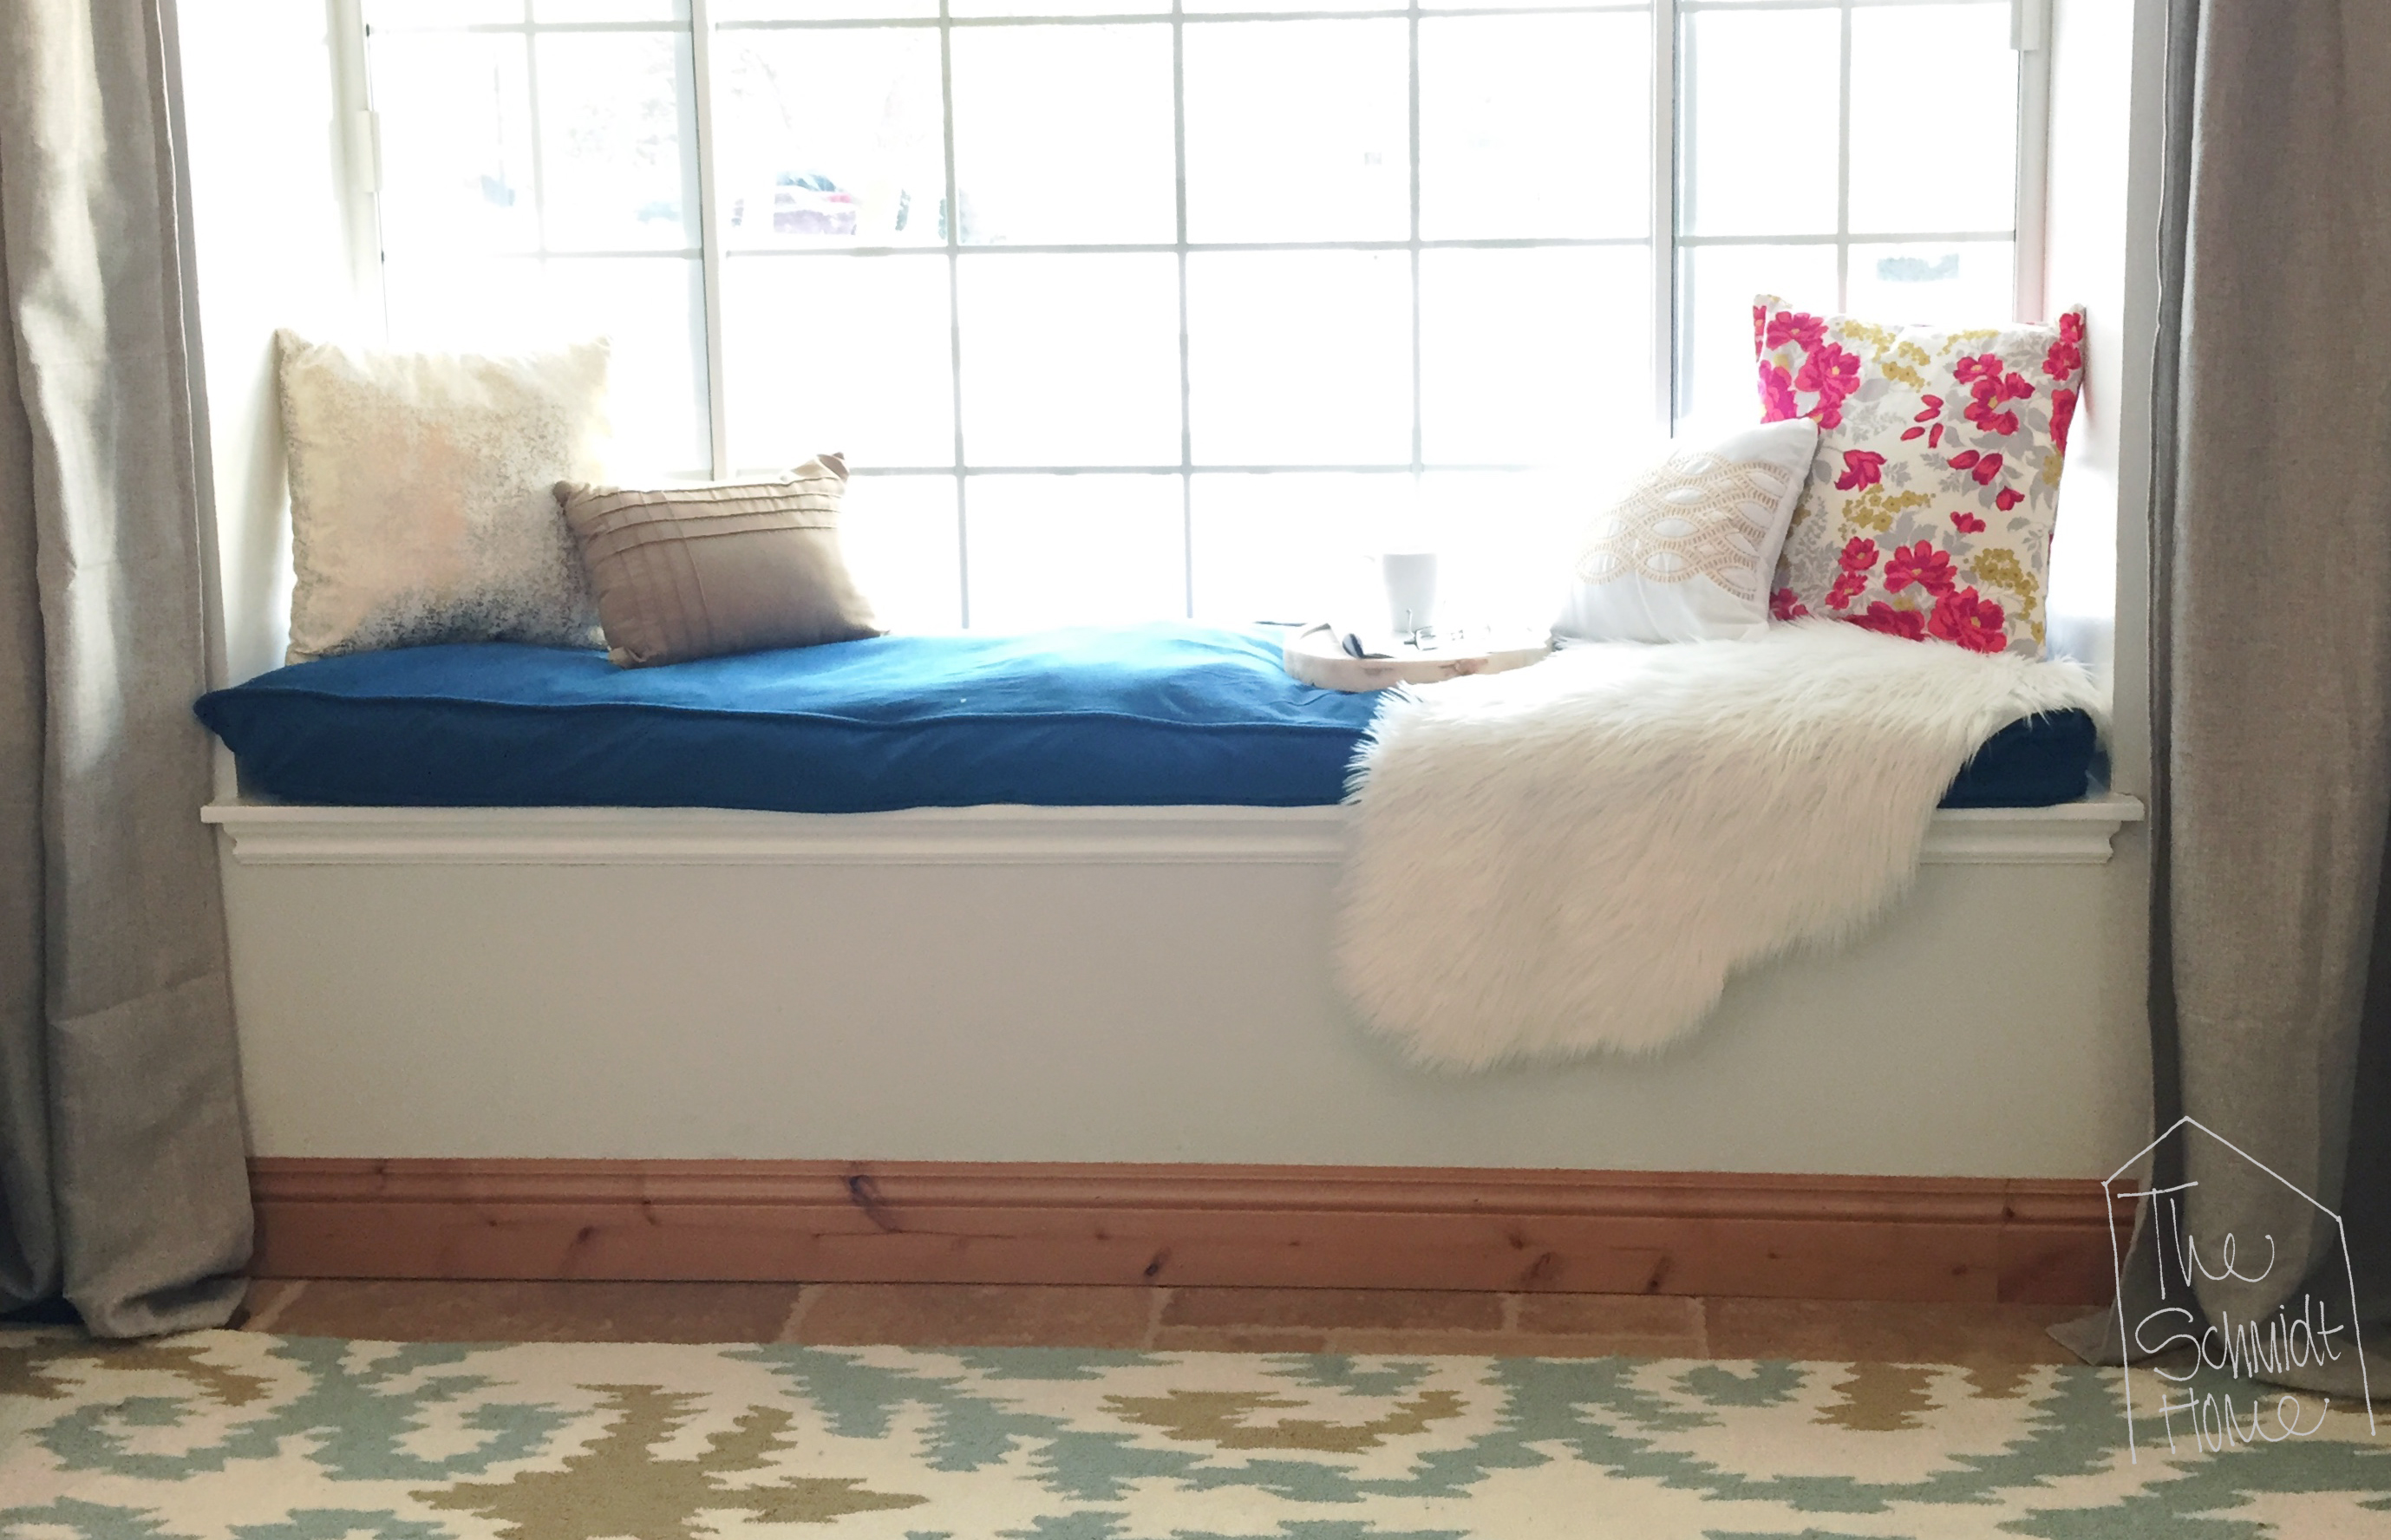 Dog Bed Turned Window Seat Cushion The Schmidt Home